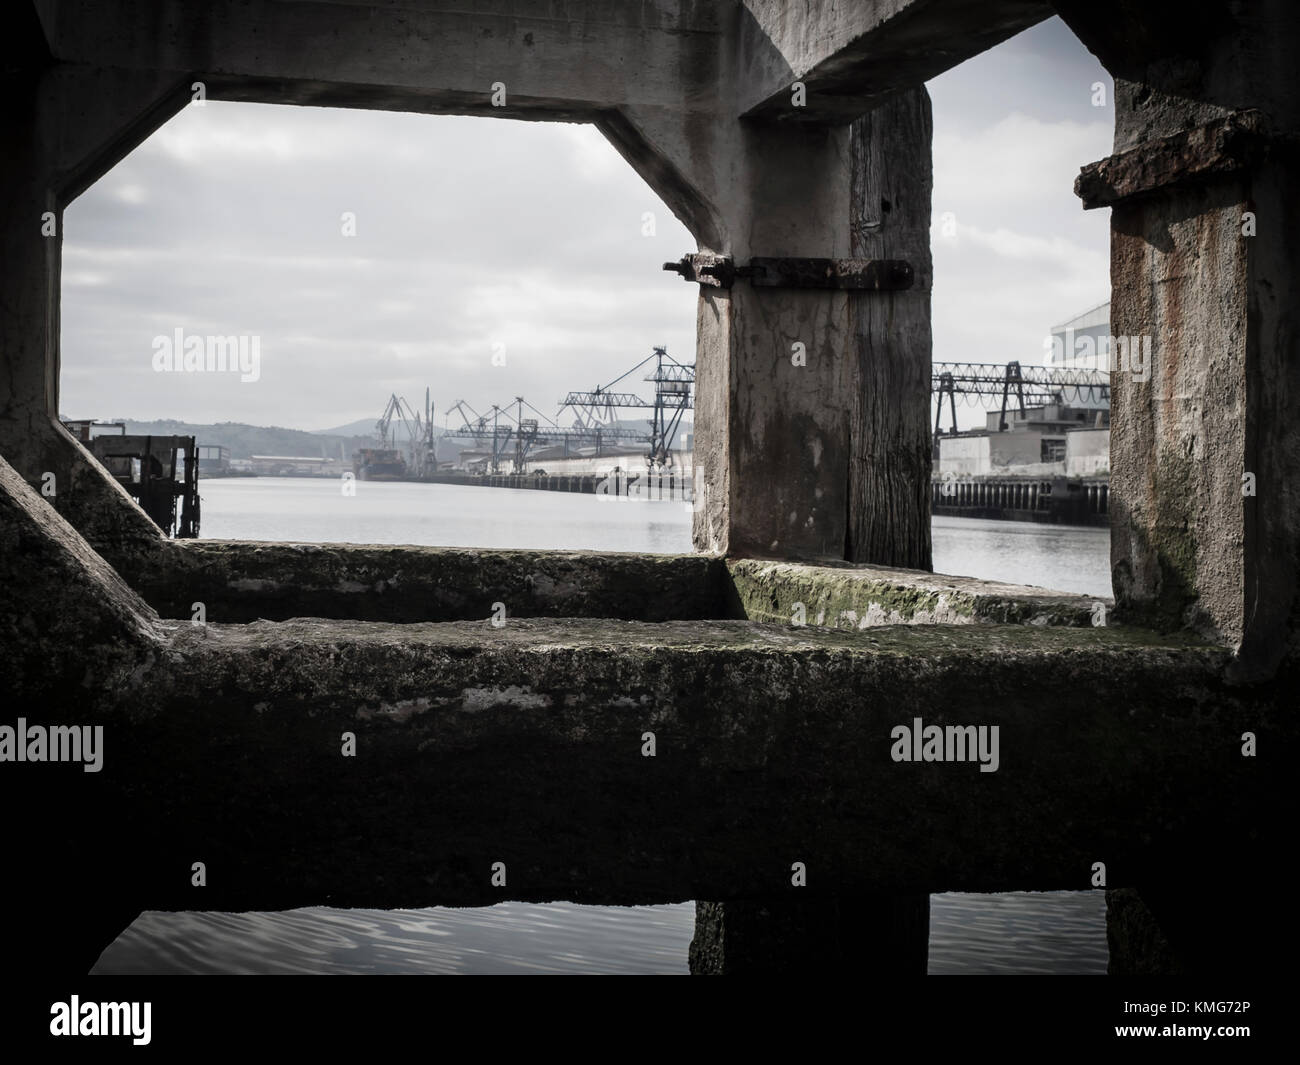 View of Bilbao river with construction crane on commercial dock - Stock Image